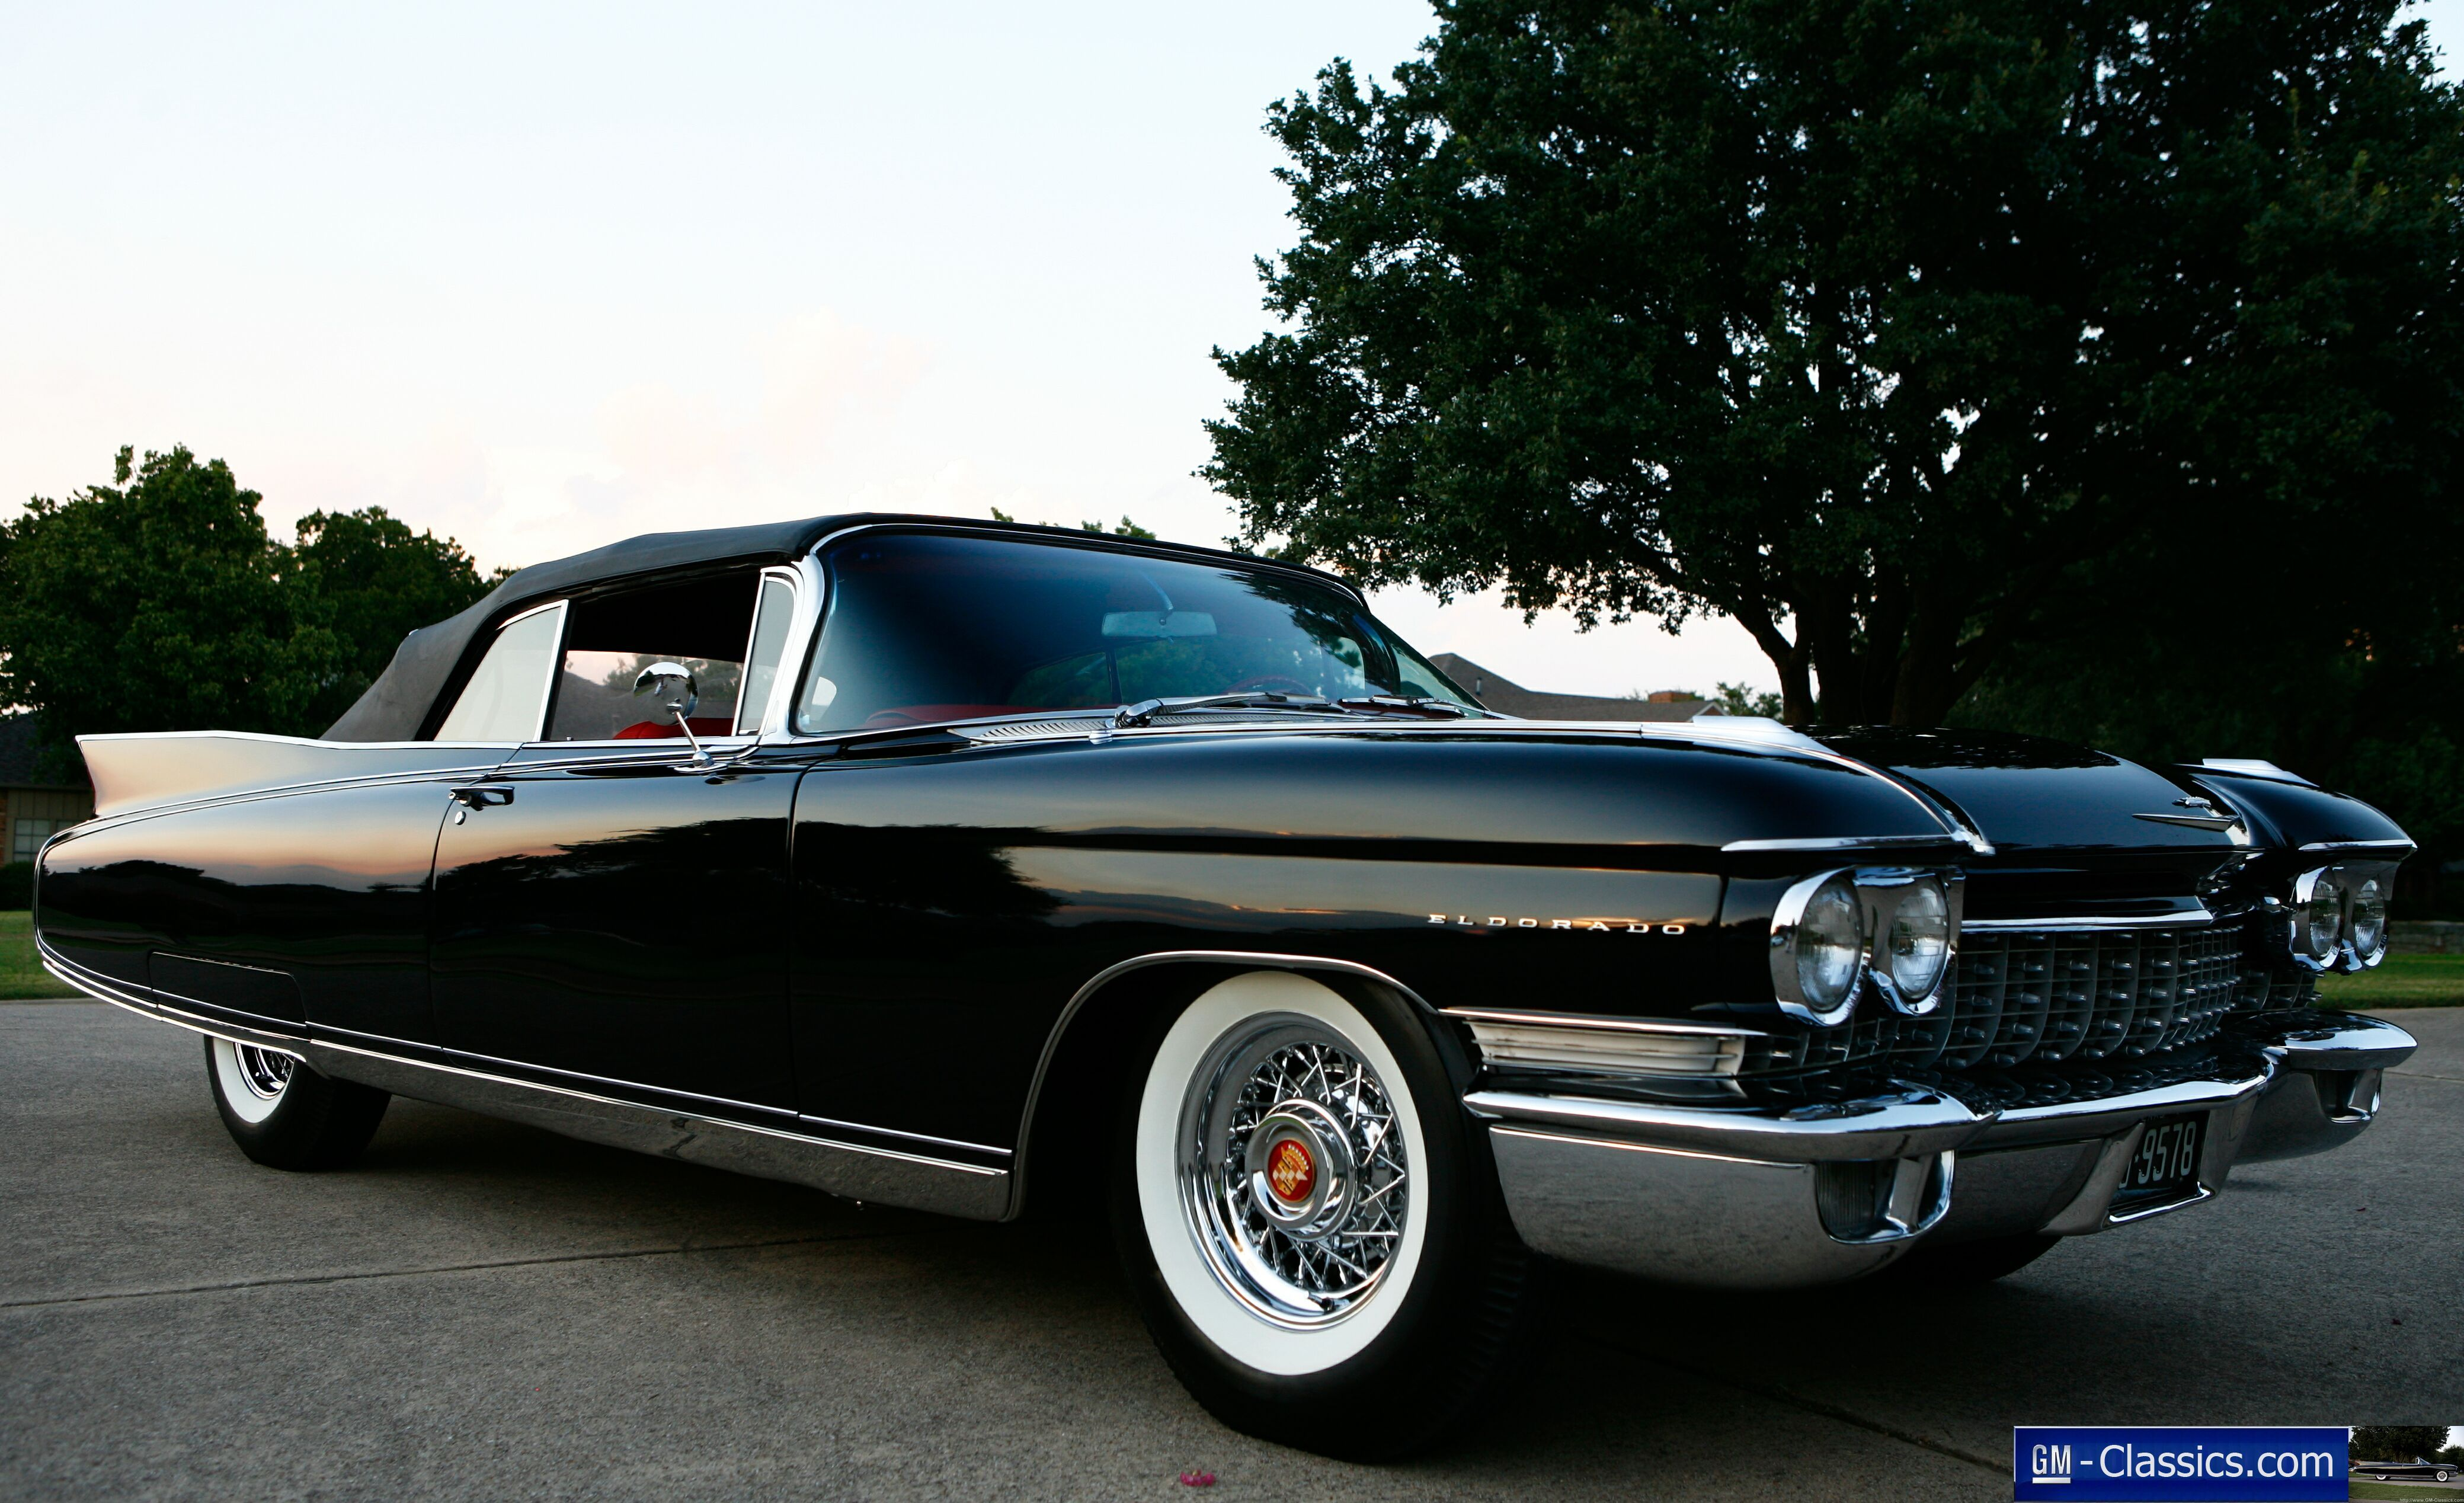 Worksheet. Cadillac Convertibles for Sale  Used Cars on Oodle Marketplace